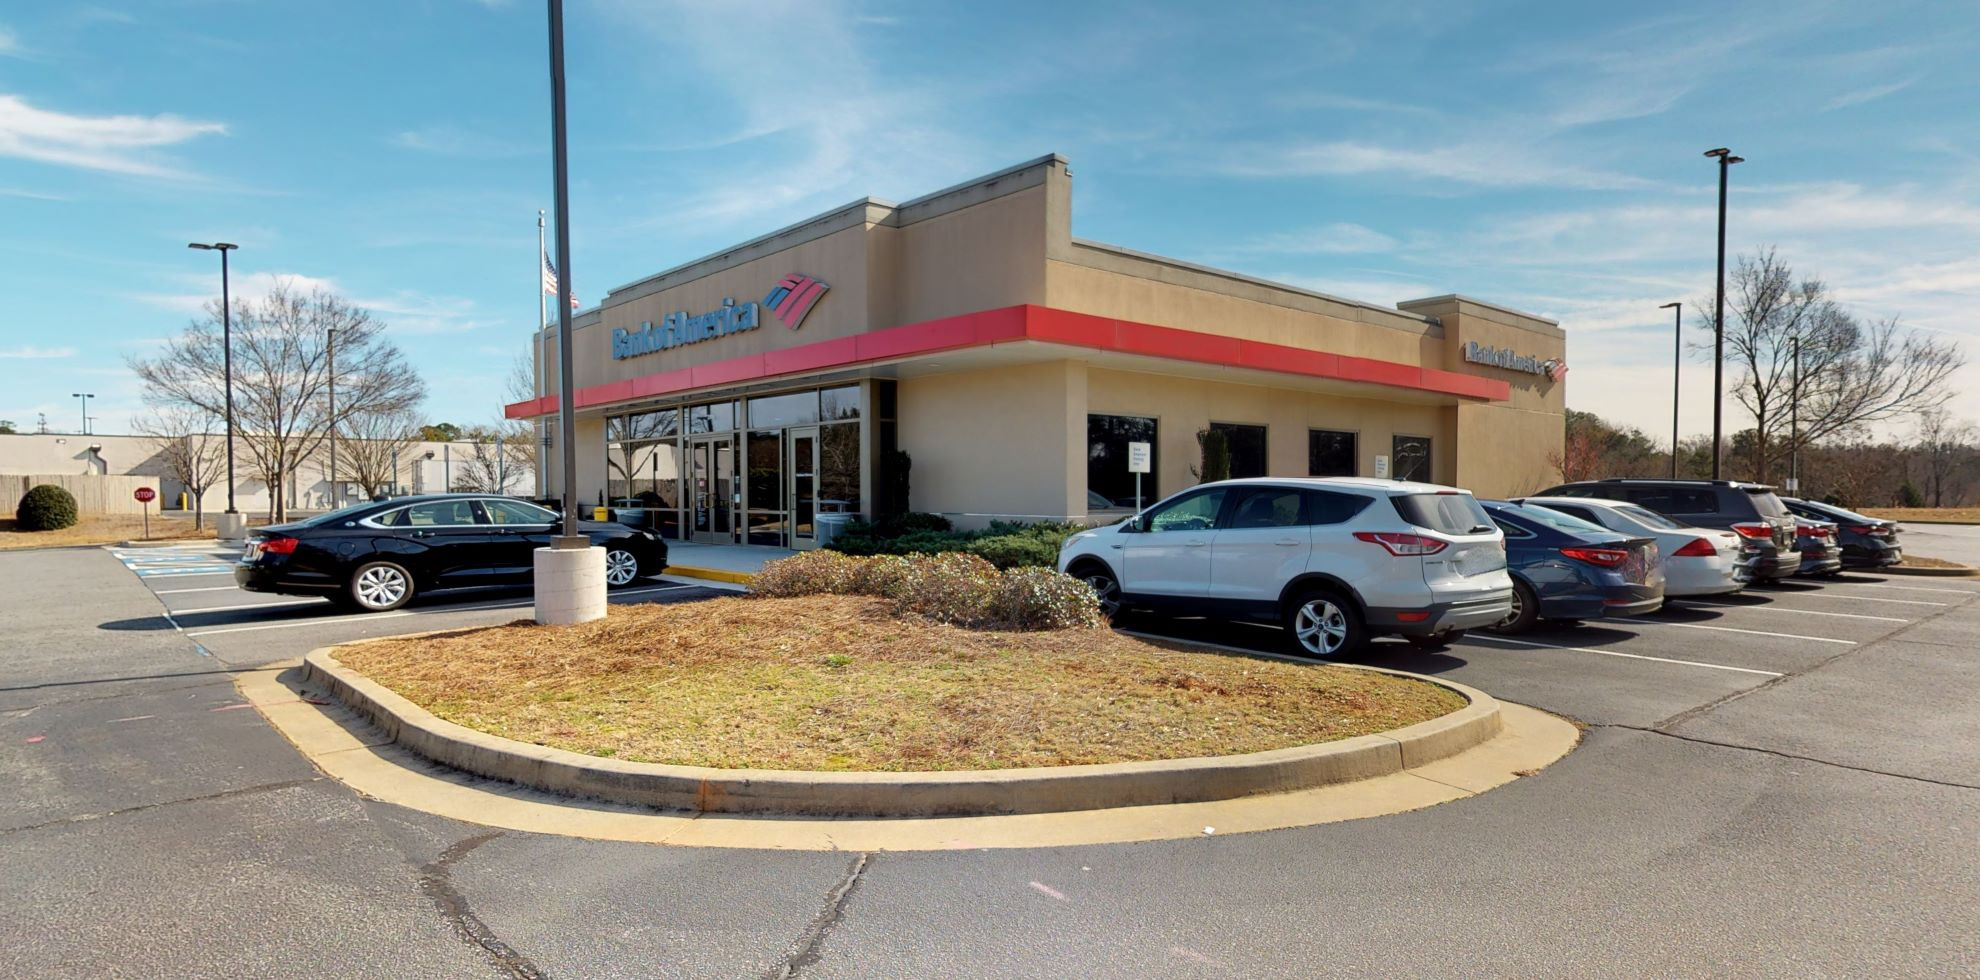 Bank of America financial center with drive-thru ATM | 3985 Sugarloaf Pkwy, Lawrenceville, GA 30044